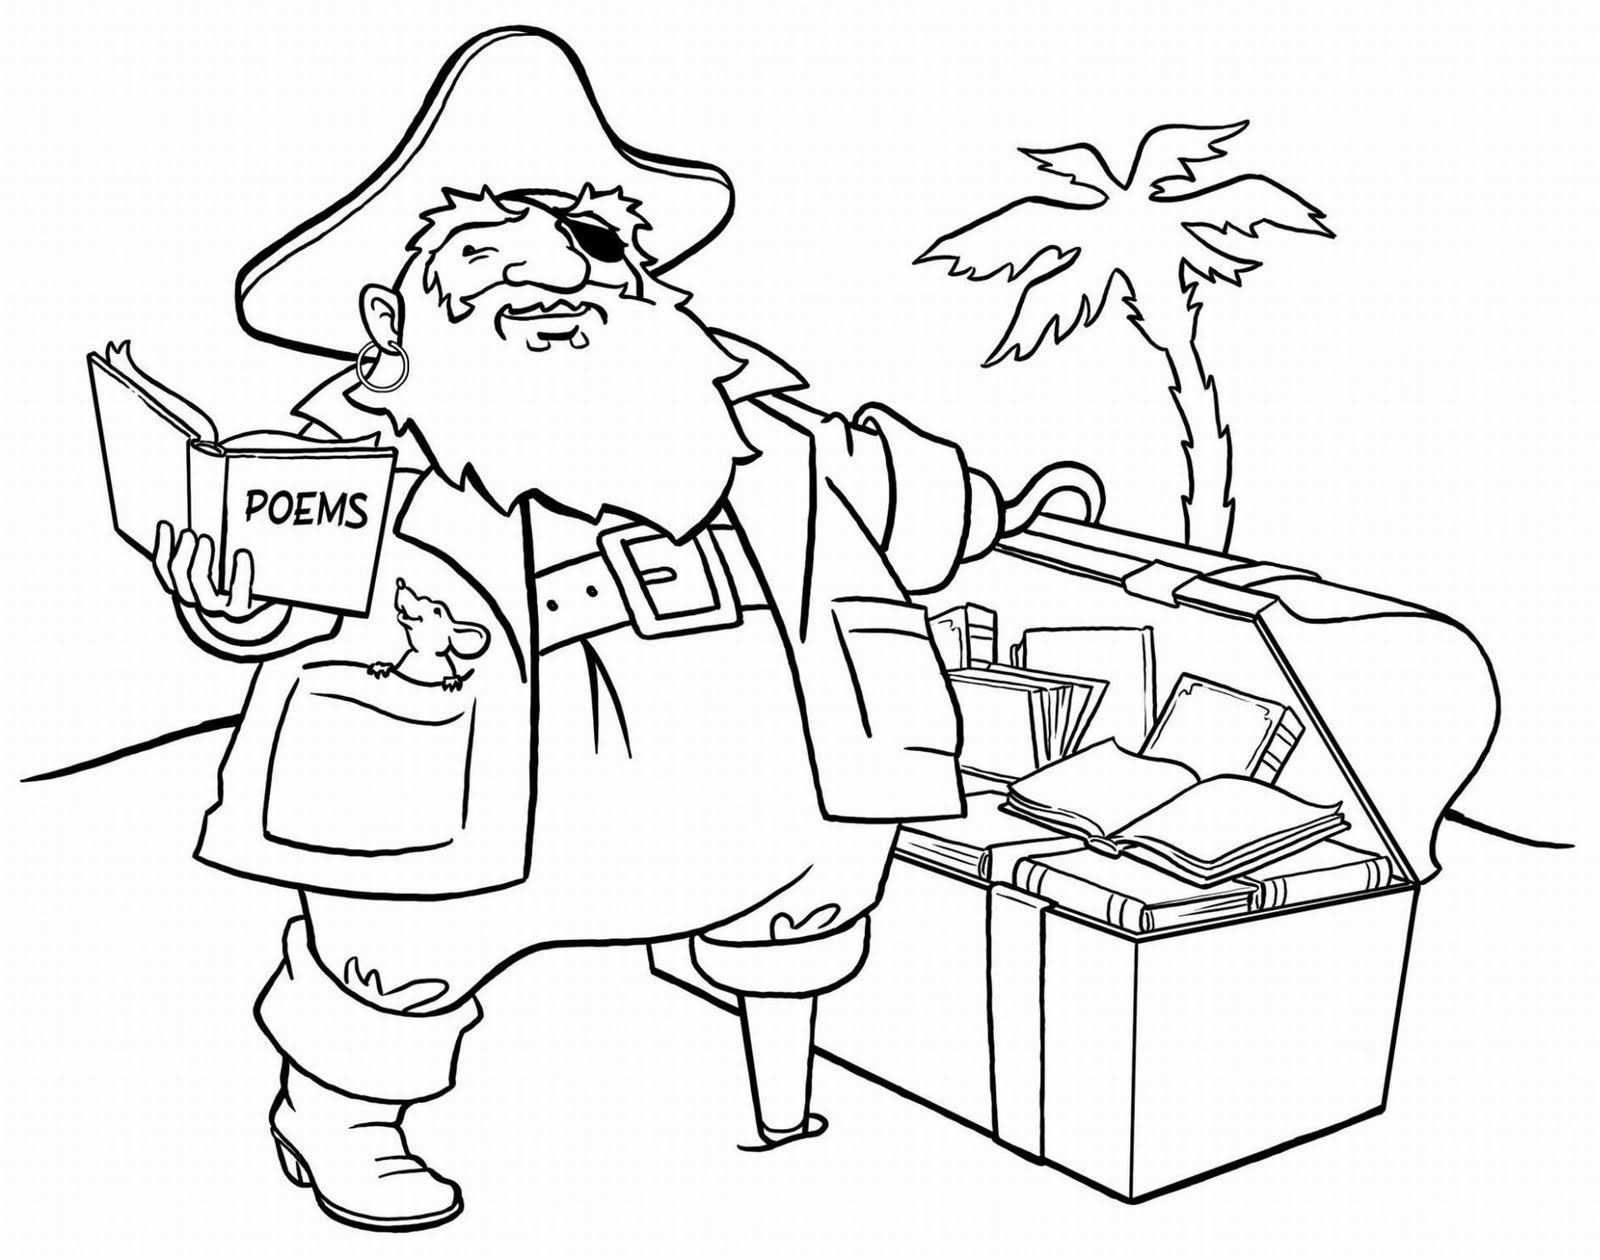 pirate coloring pages for kids printable lego pirate coloring pages at getcoloringscom free for pages pirate kids coloring printable